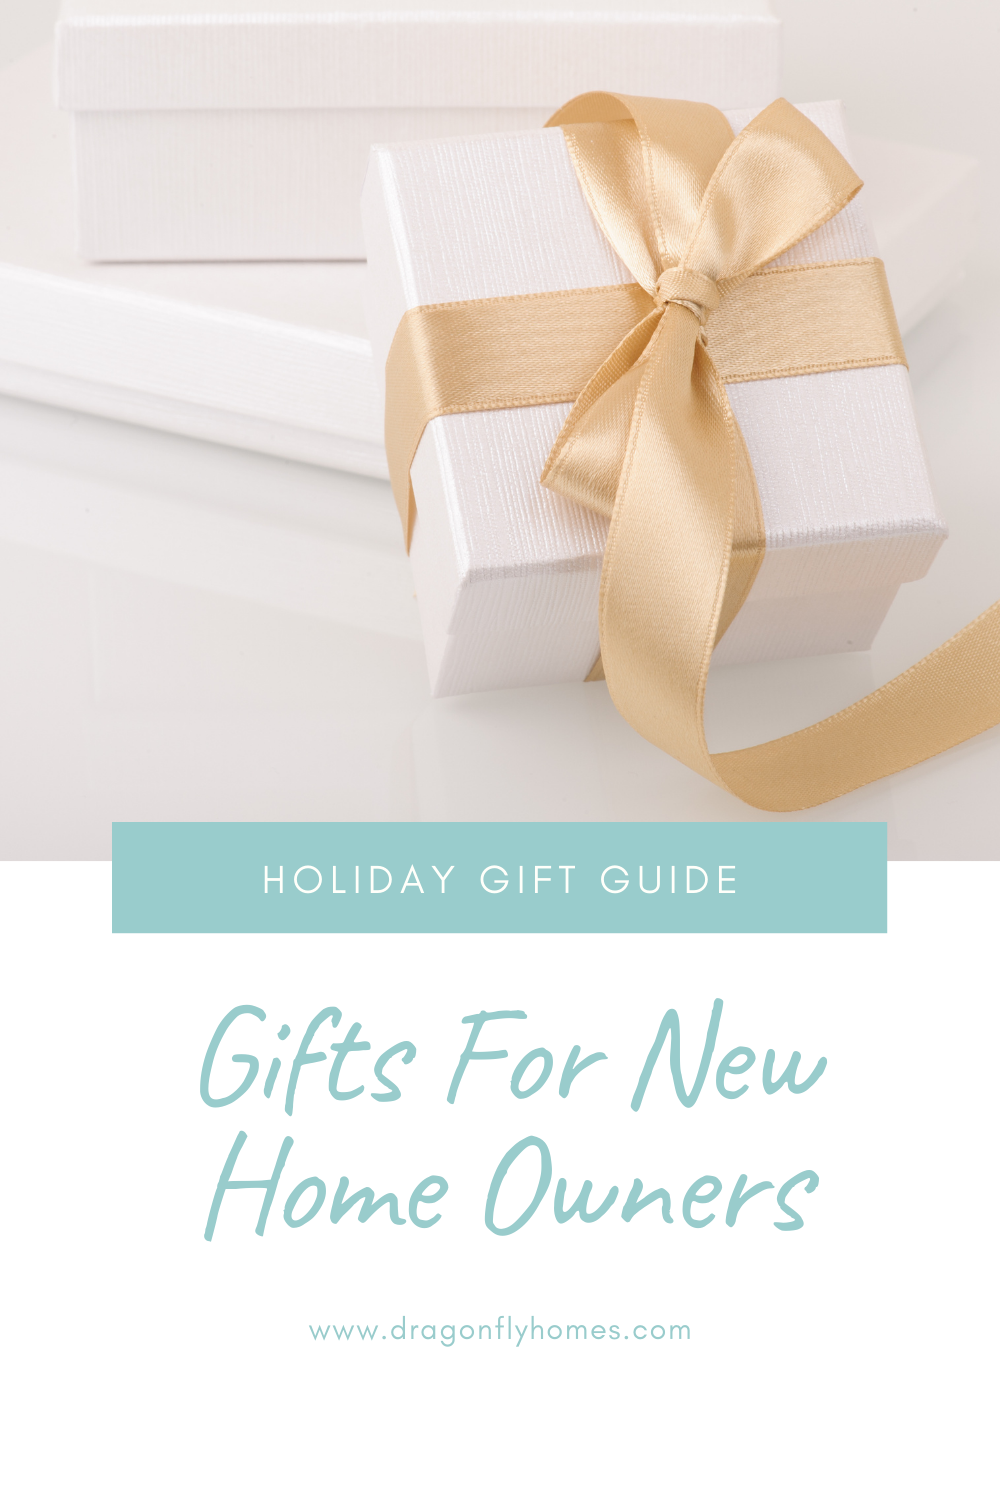 Gift Guide for New Home Owners by Dragonfly Homes